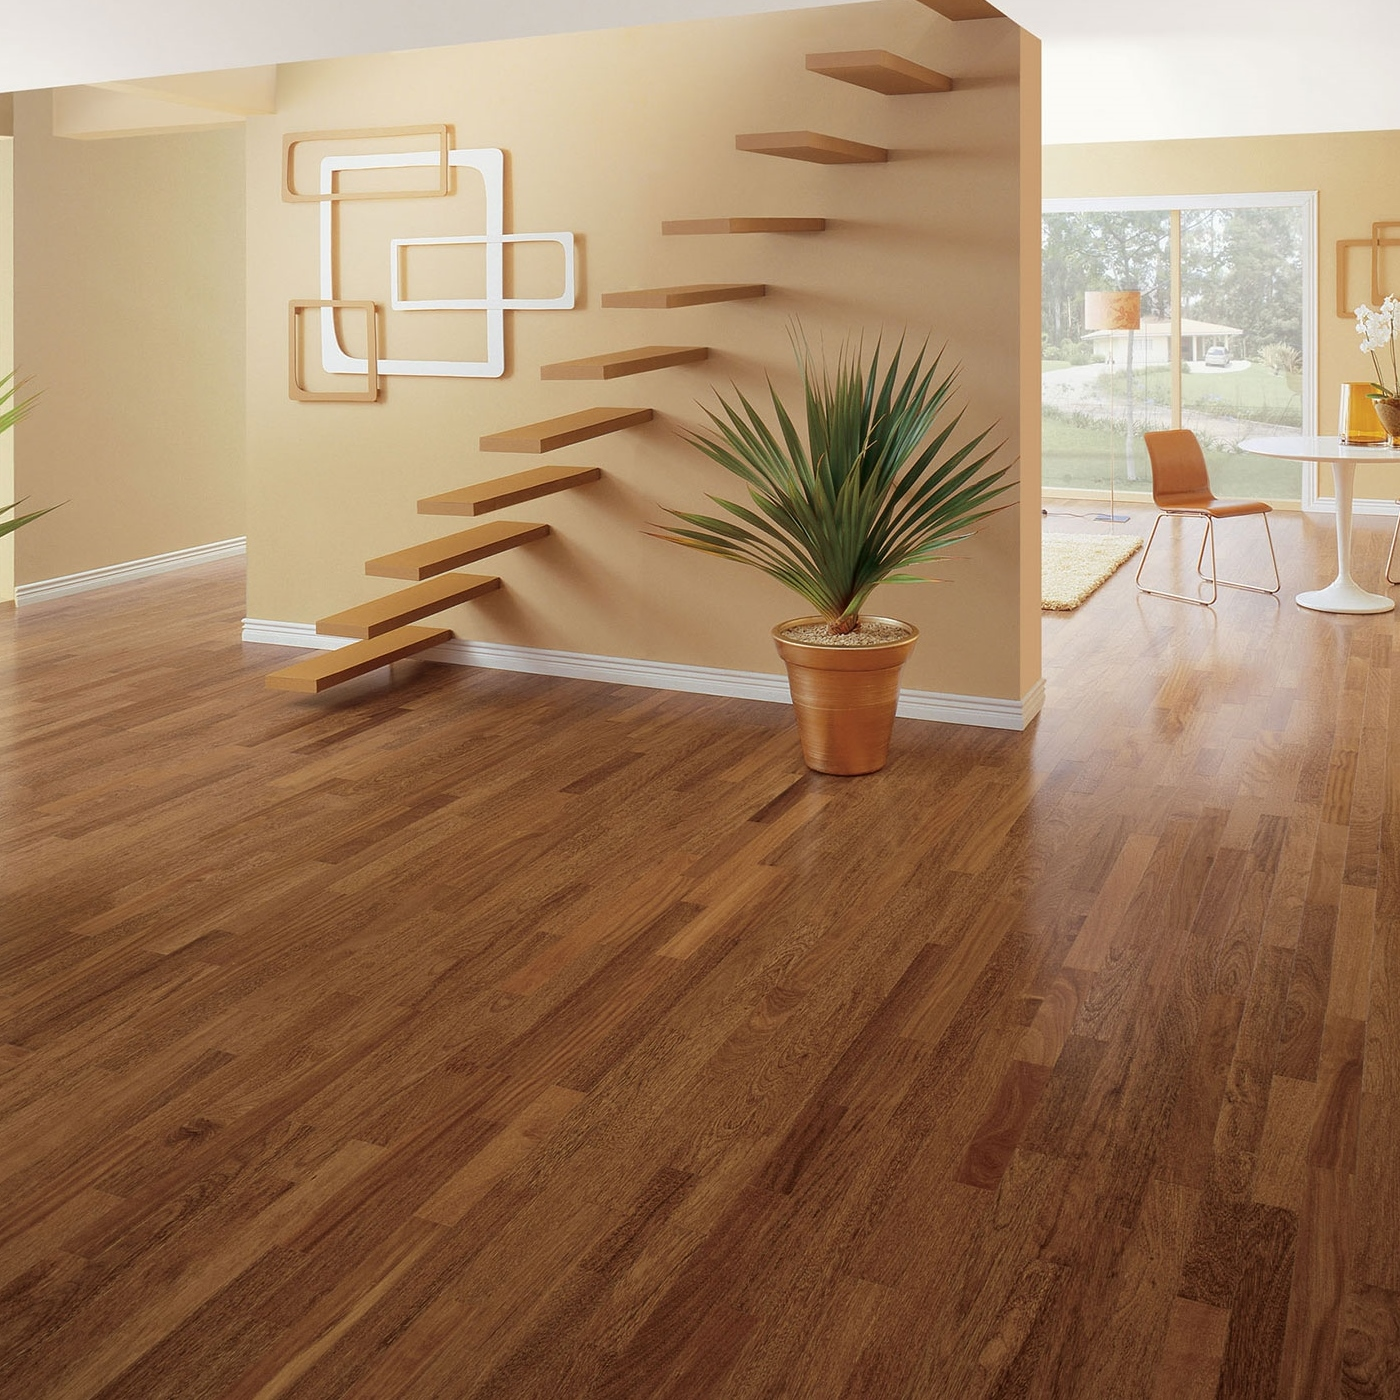 spotlight floors product luxe united farmhouse rigid wood brown plank core armstrong with flooring rugged